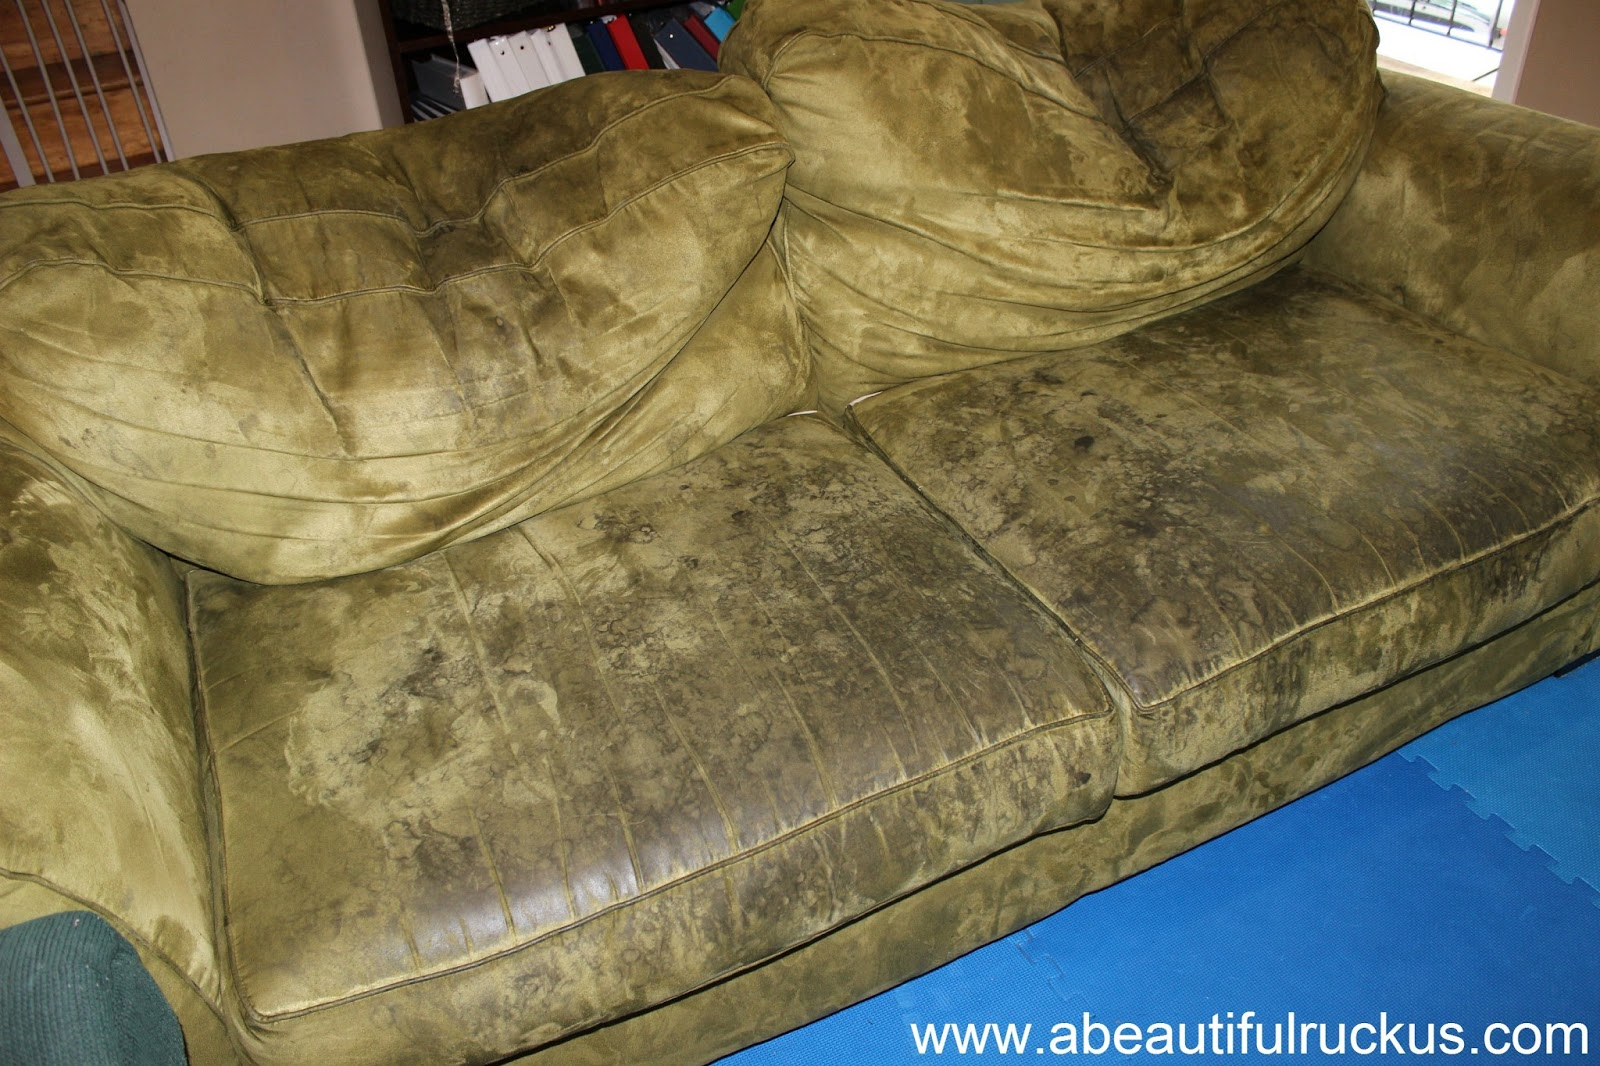 Couch Gross That One Friends House You Hated Having Sleepovers